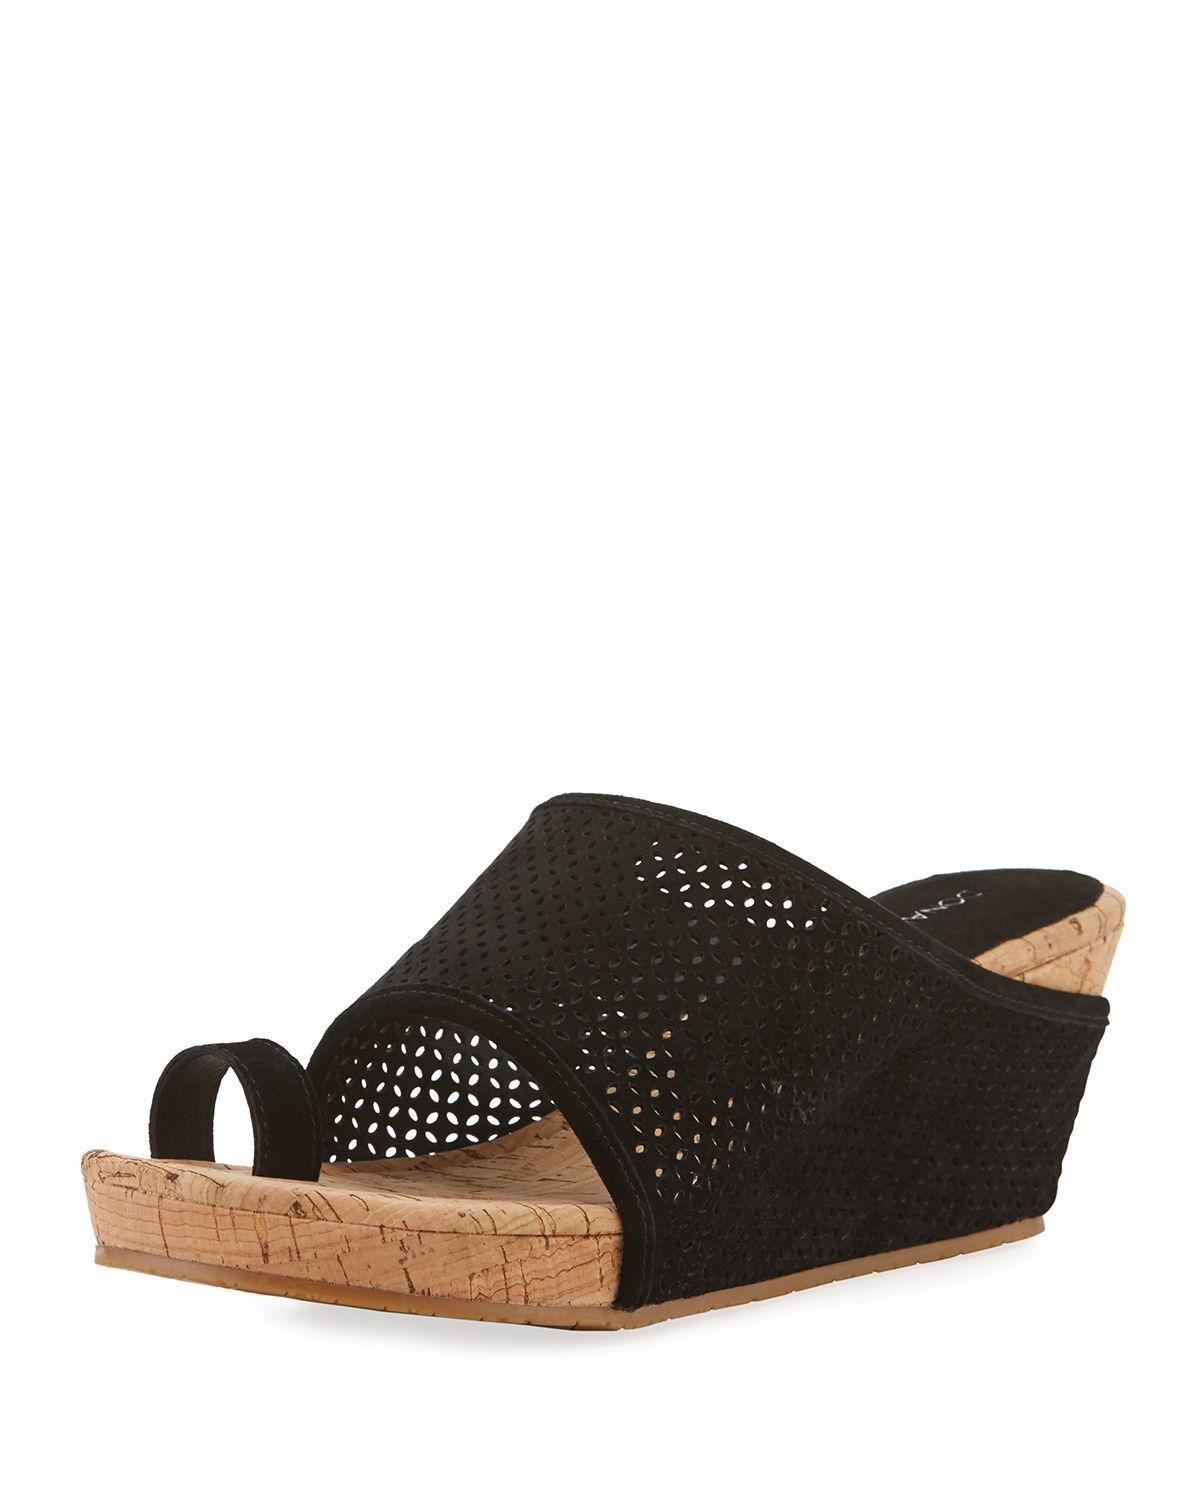 80c556a21d8 Lyst - Donald J Pliner Gent Perforated Suede Wedge Sandals in Black